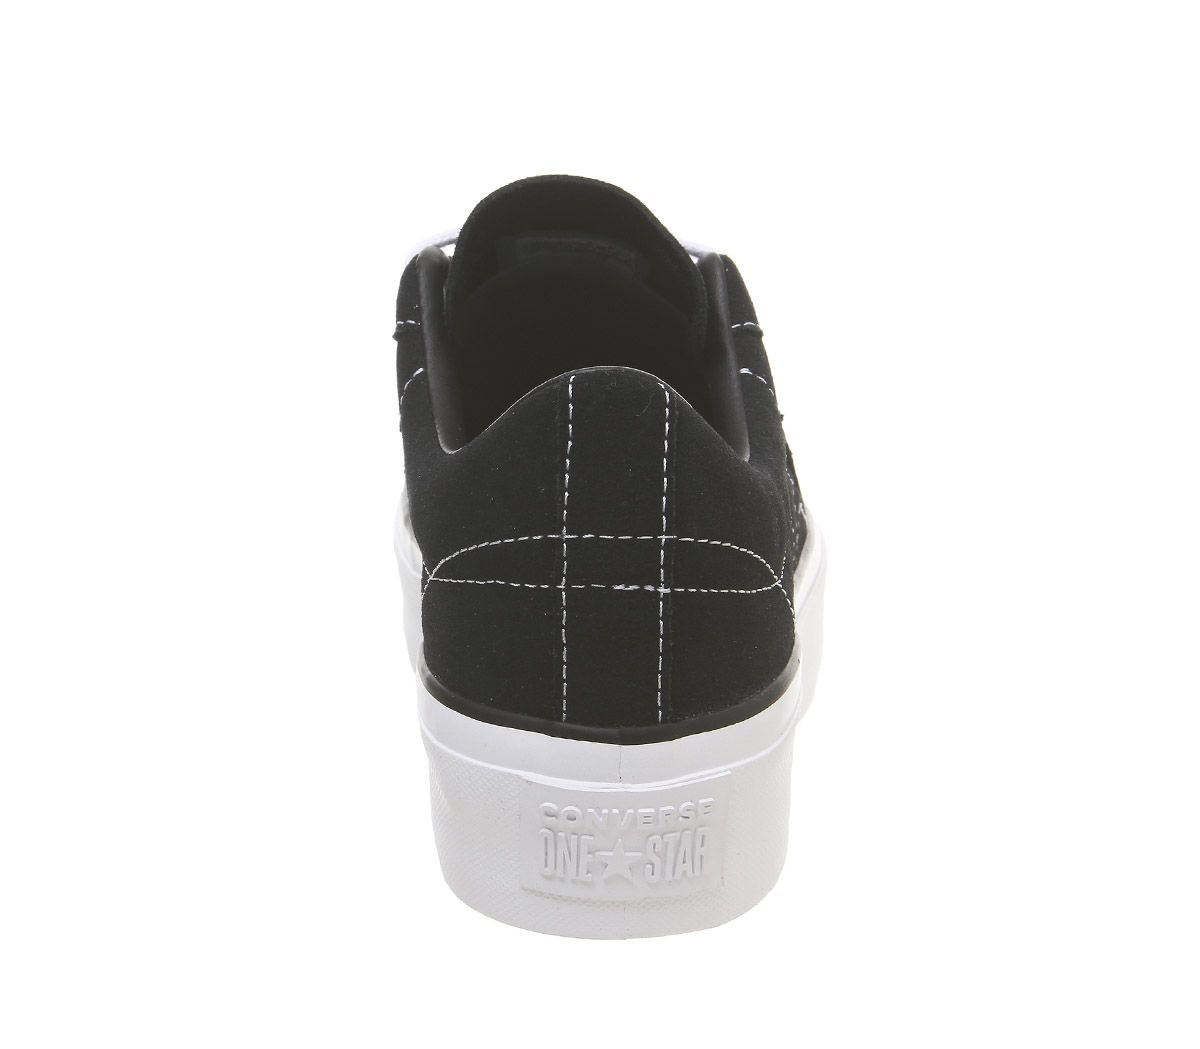 Womens-Converse-One-Star-Platform-Trainers-Black-Black-White-Trainers-Shoes thumbnail 7